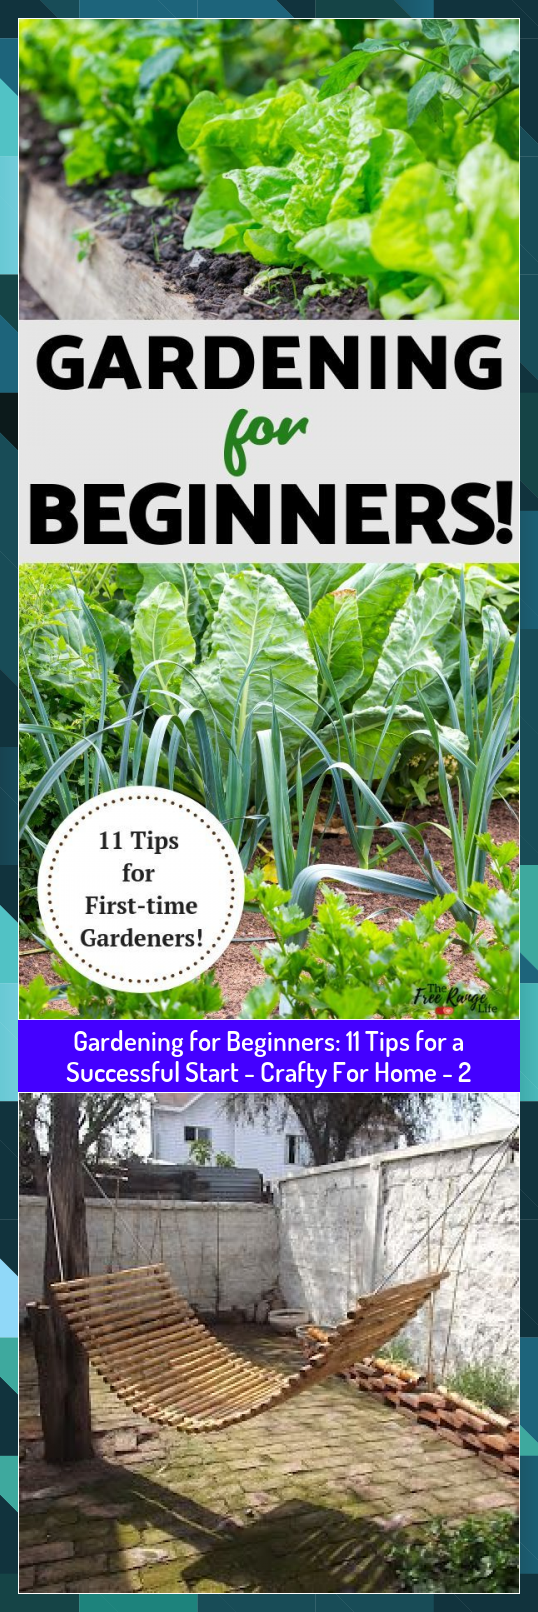 Gardening for Beginners: 11 Tips for a Successful Start - Crafty For Home - 2 #Beginners #Crafty #Gardening #Home #Start #Successful #Tips